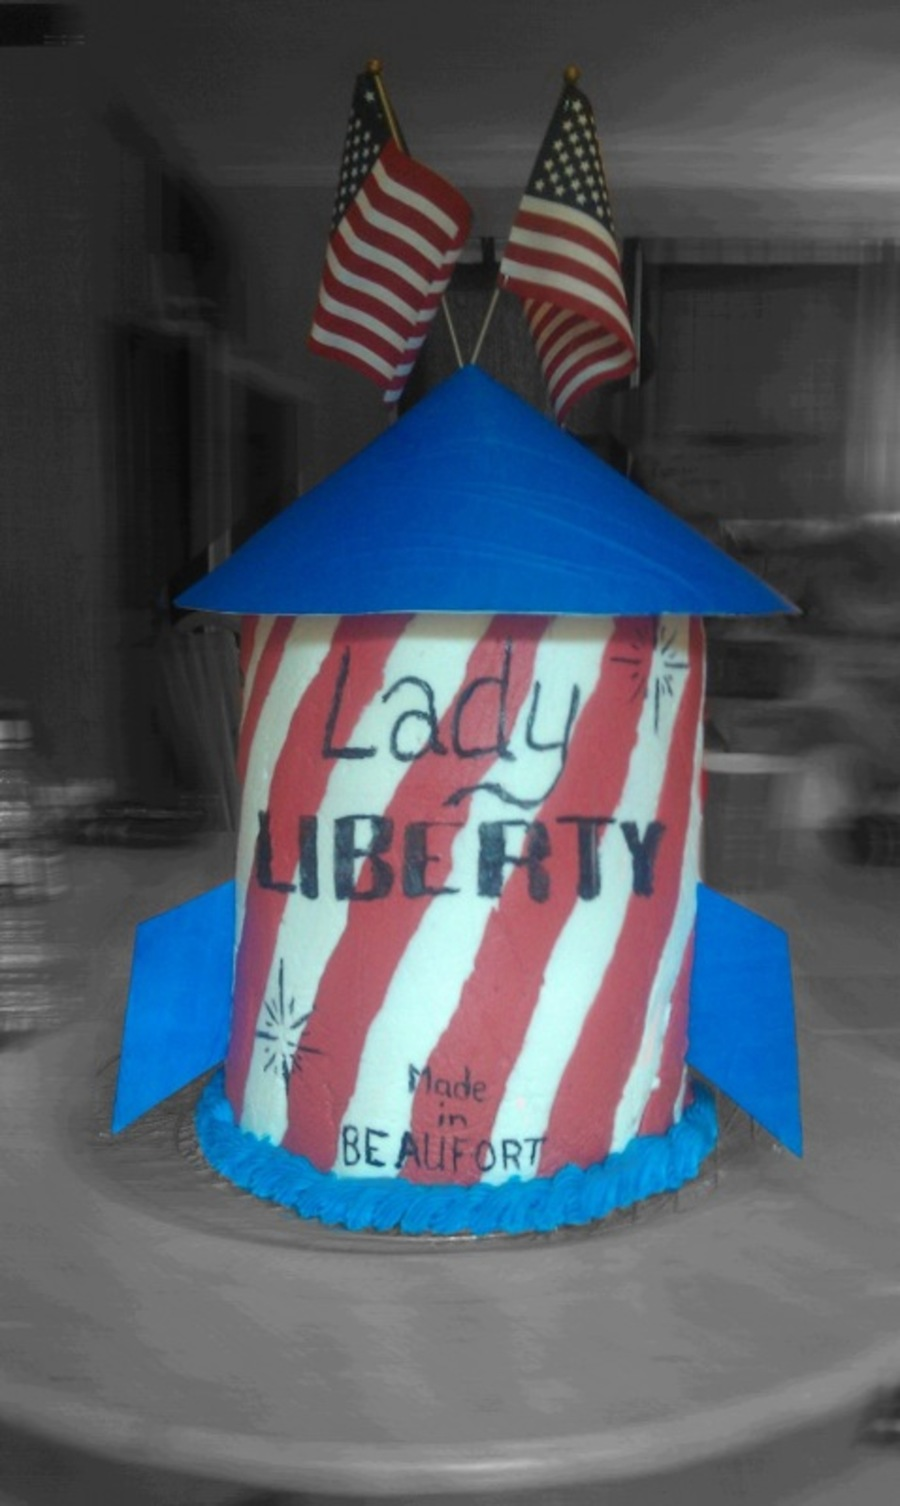 Lady Liberty on Cake Central